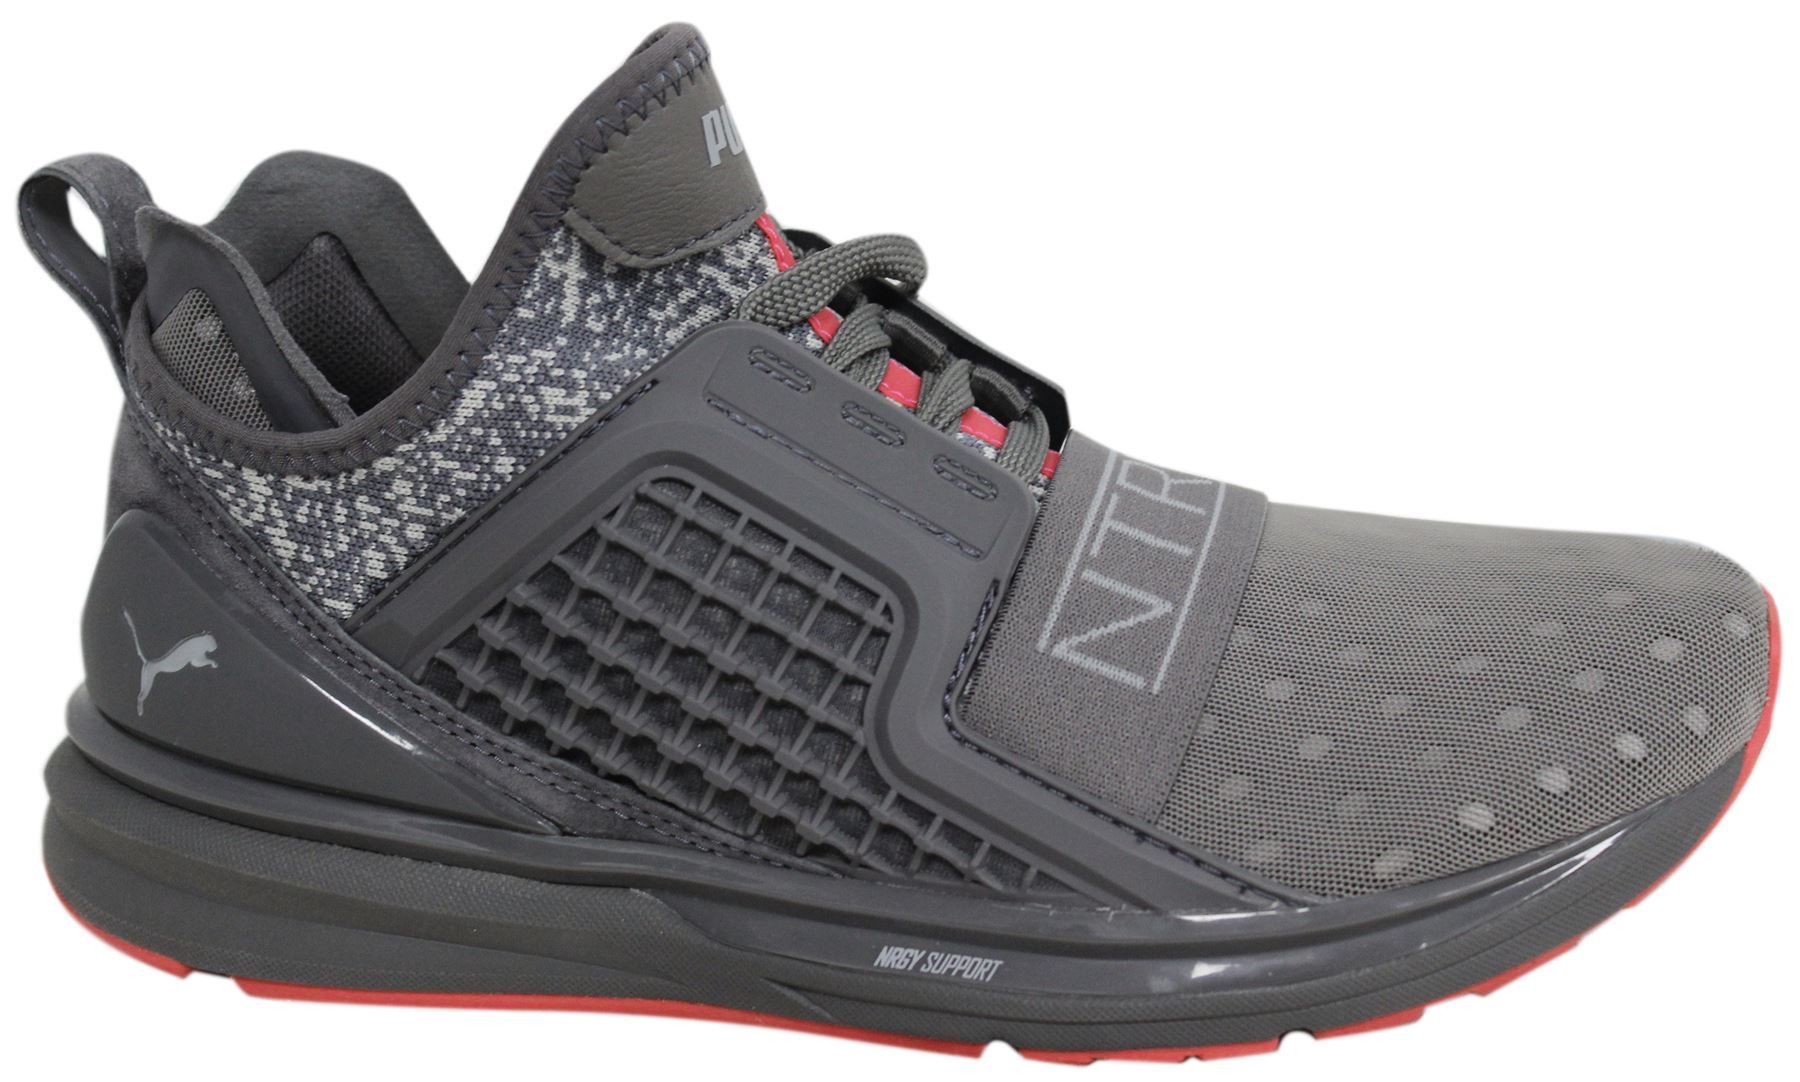 new styles 5a1c8 1f38a Details about Puma x Staple Ignite Limitless Lace Up Grey Textile Mens  Trainers 363202 02 D30